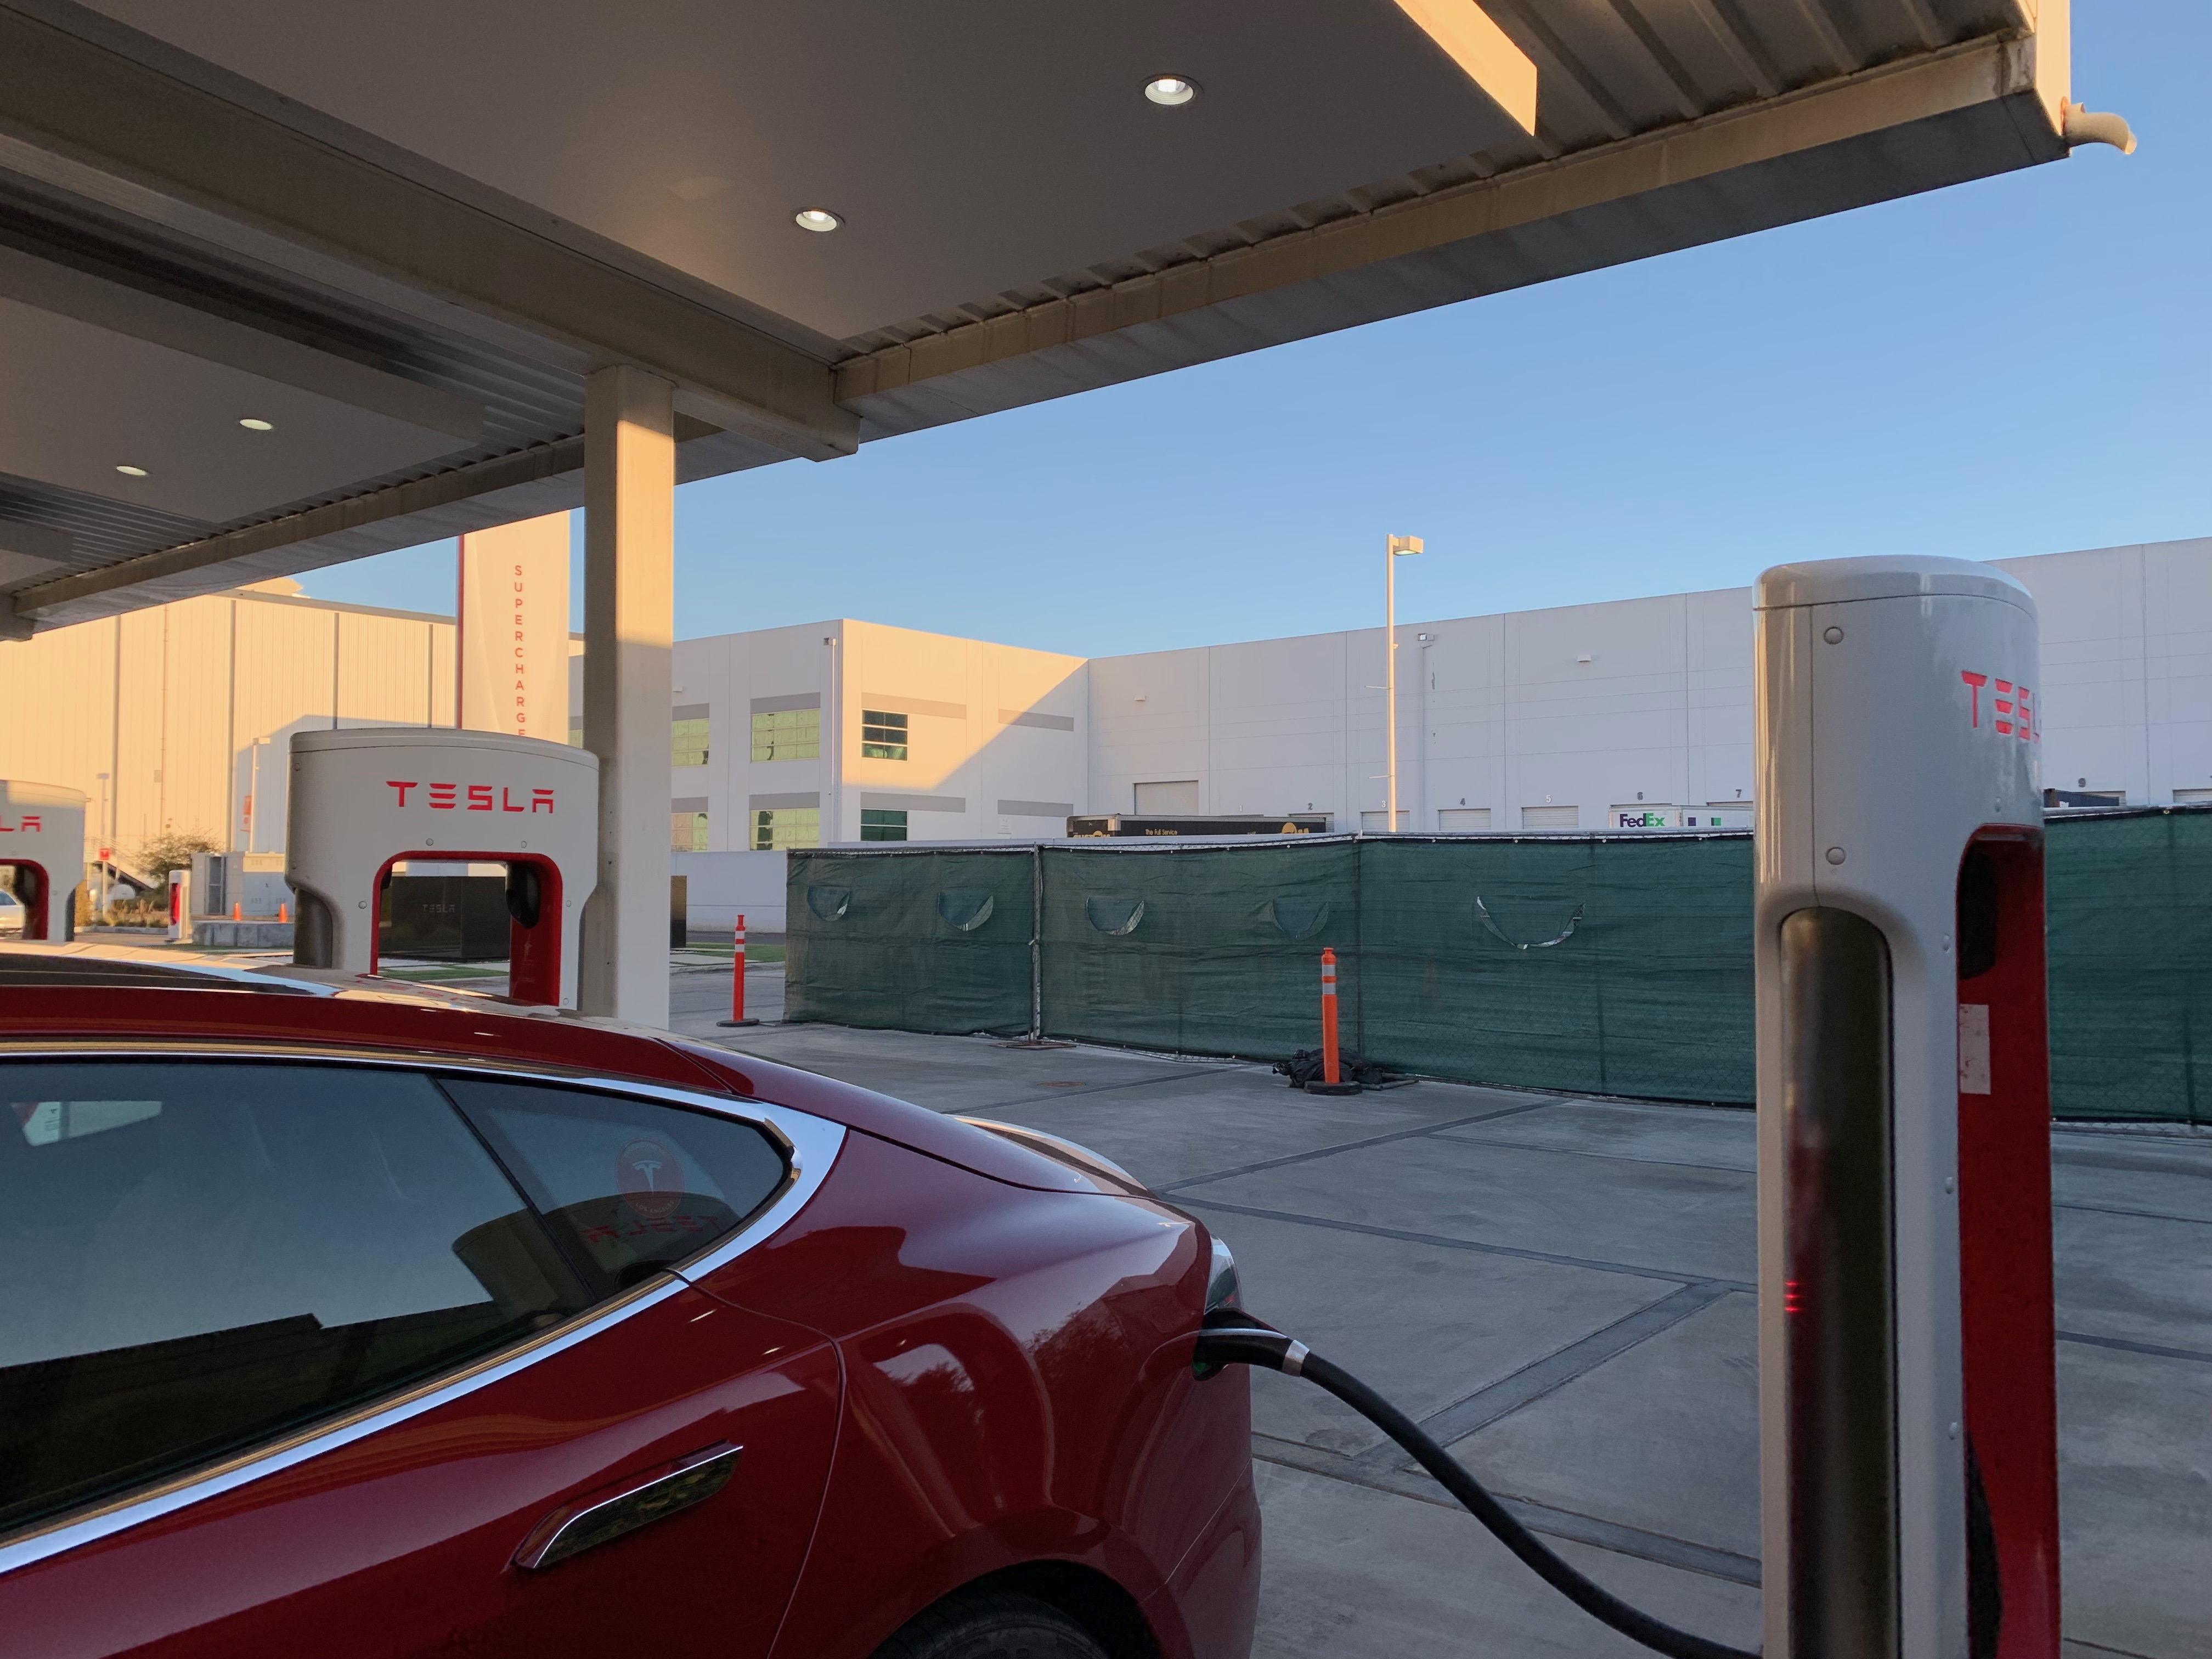 tesla-supercharger-v3-la-design-center-4